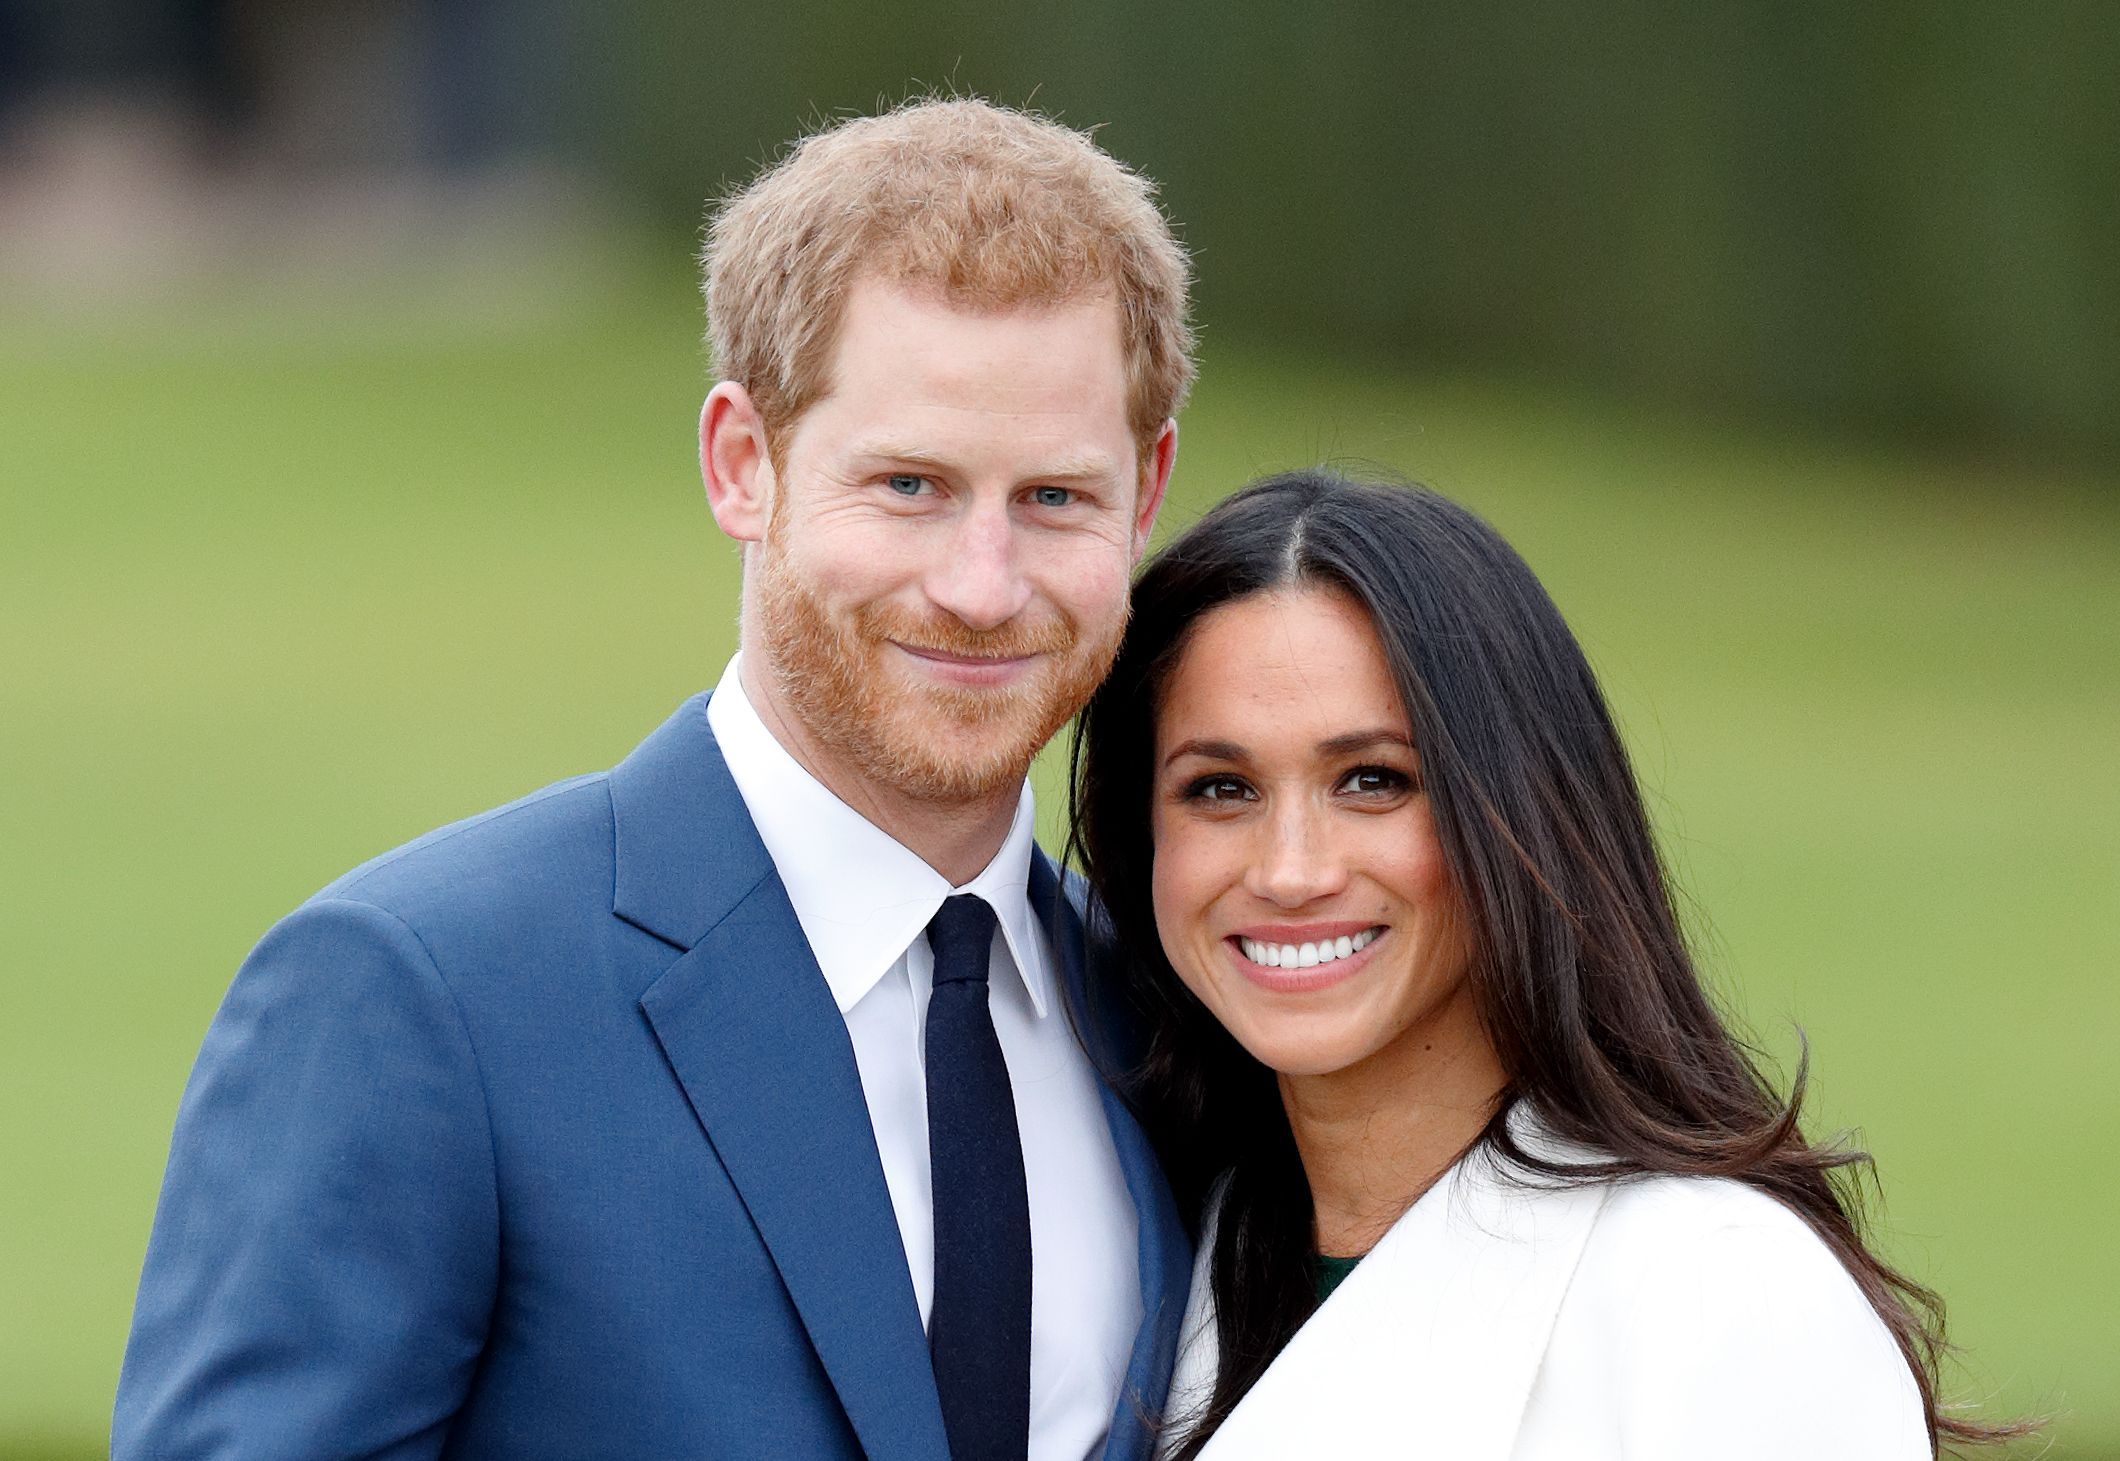 Prince Harry and Meghan Markle Have Issued an Apology Following the Typo Backlash